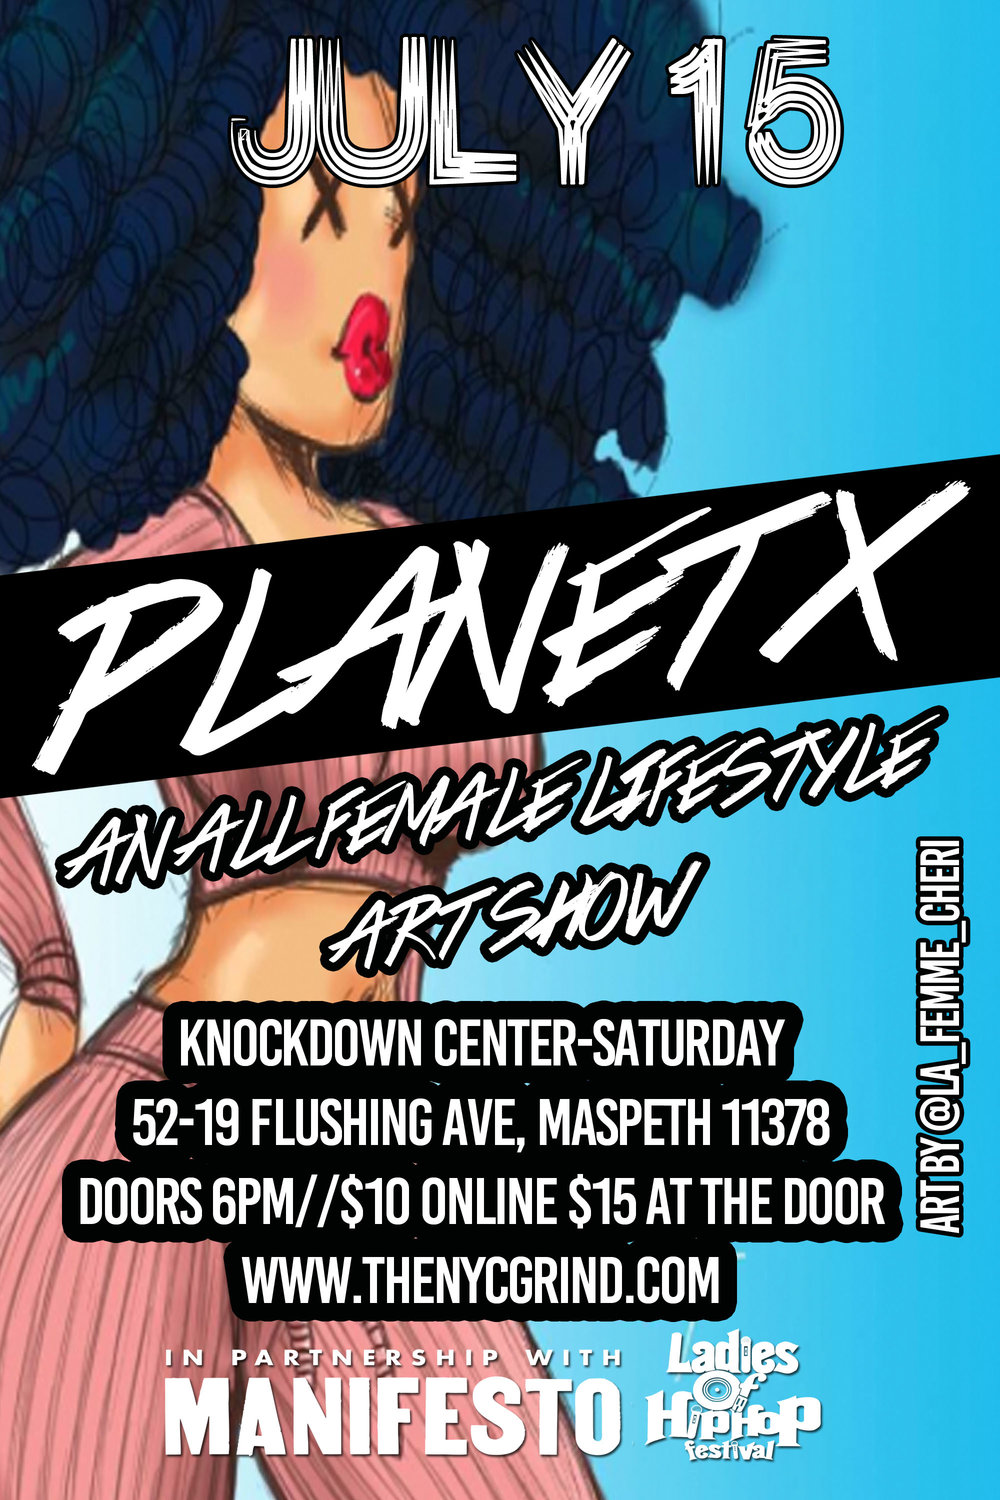 PLANET X x LADIES OF HIPHOP - Hauling over 300 female artists, dancers and creatives, Planet X is one of  NYCs biggest all female art showcases! In collaboration with Manifesto, Ladies of Hip Hop, Planet X will be a night you won't forget! TICKETS BELOW!